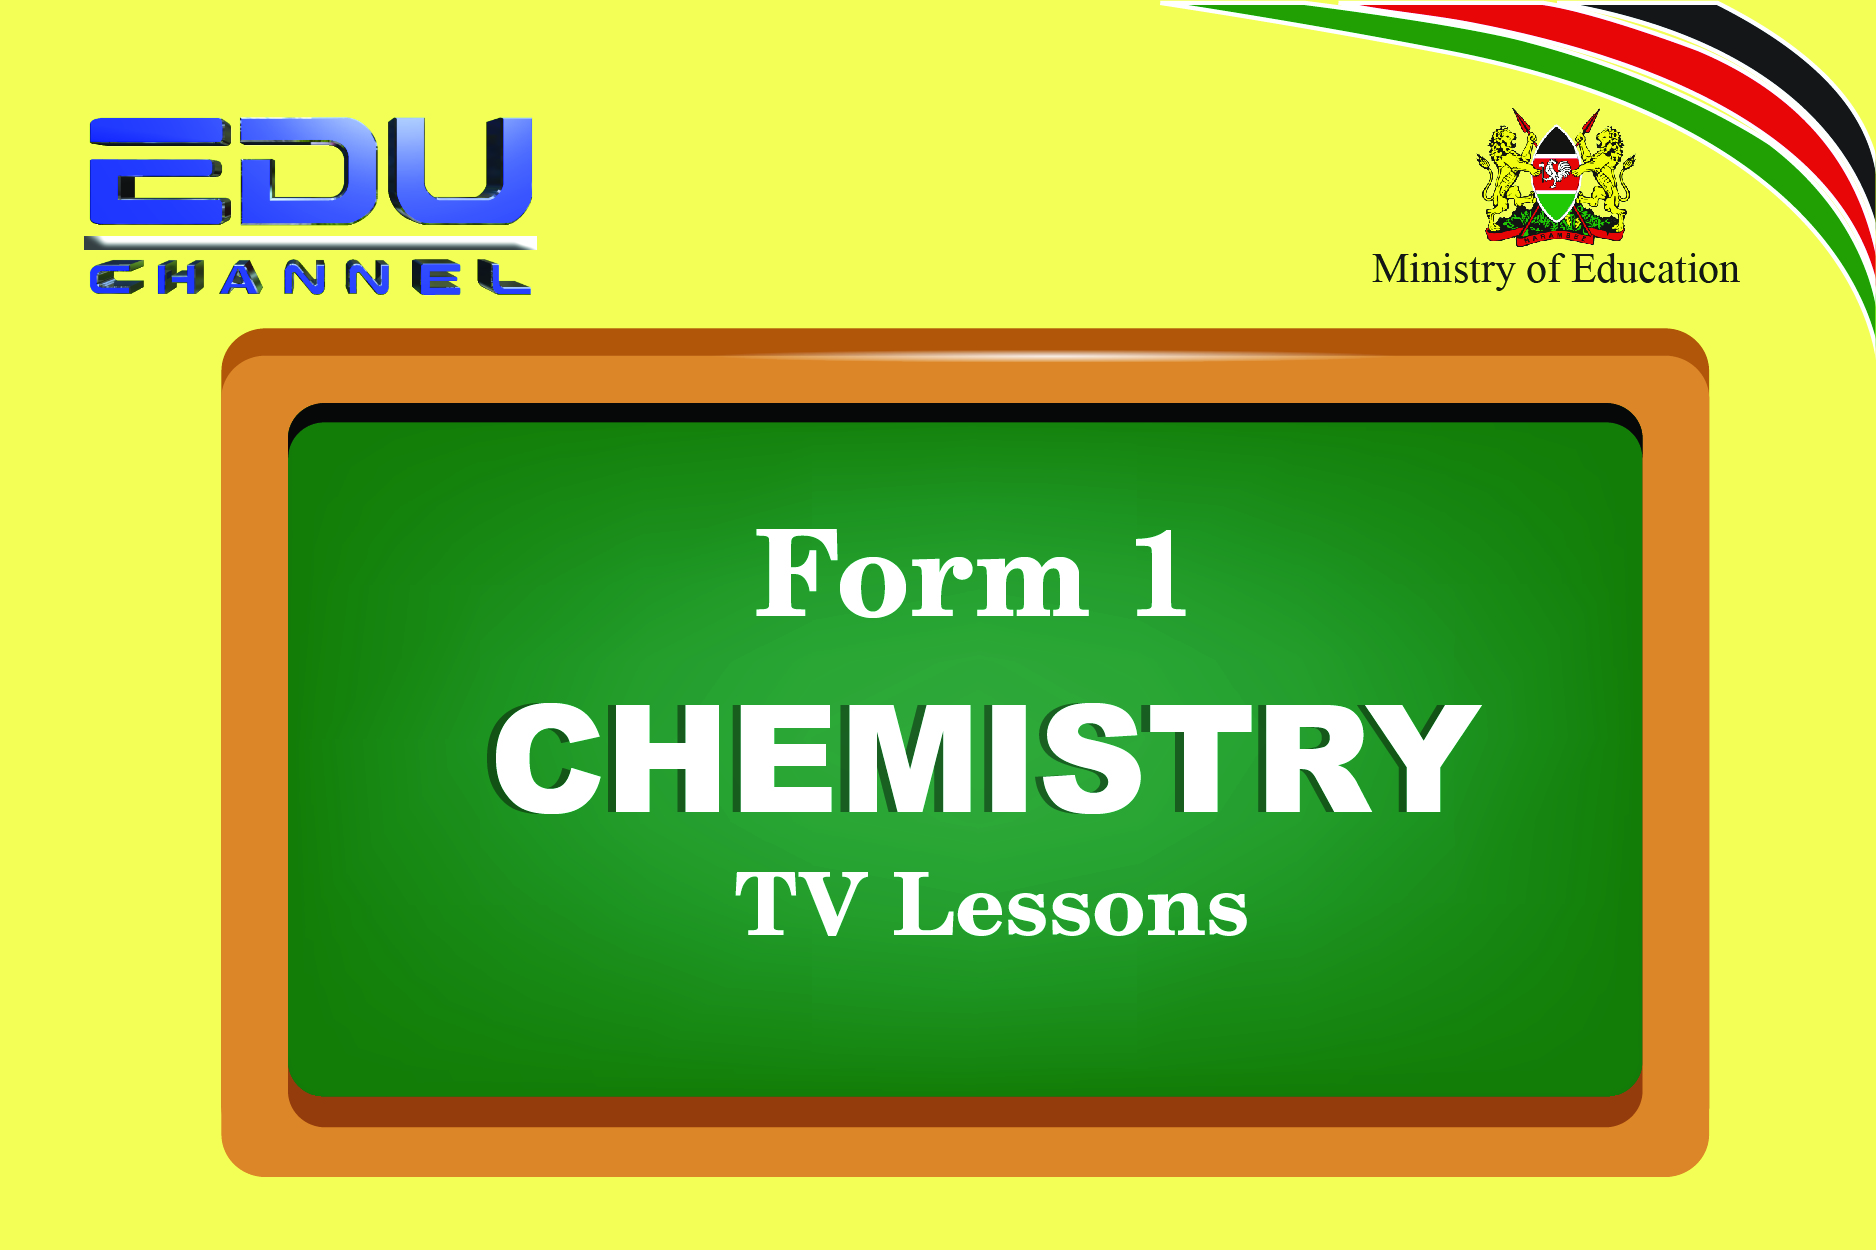 Form 1 Chemistry Lesson 3: Separation of Mixtures